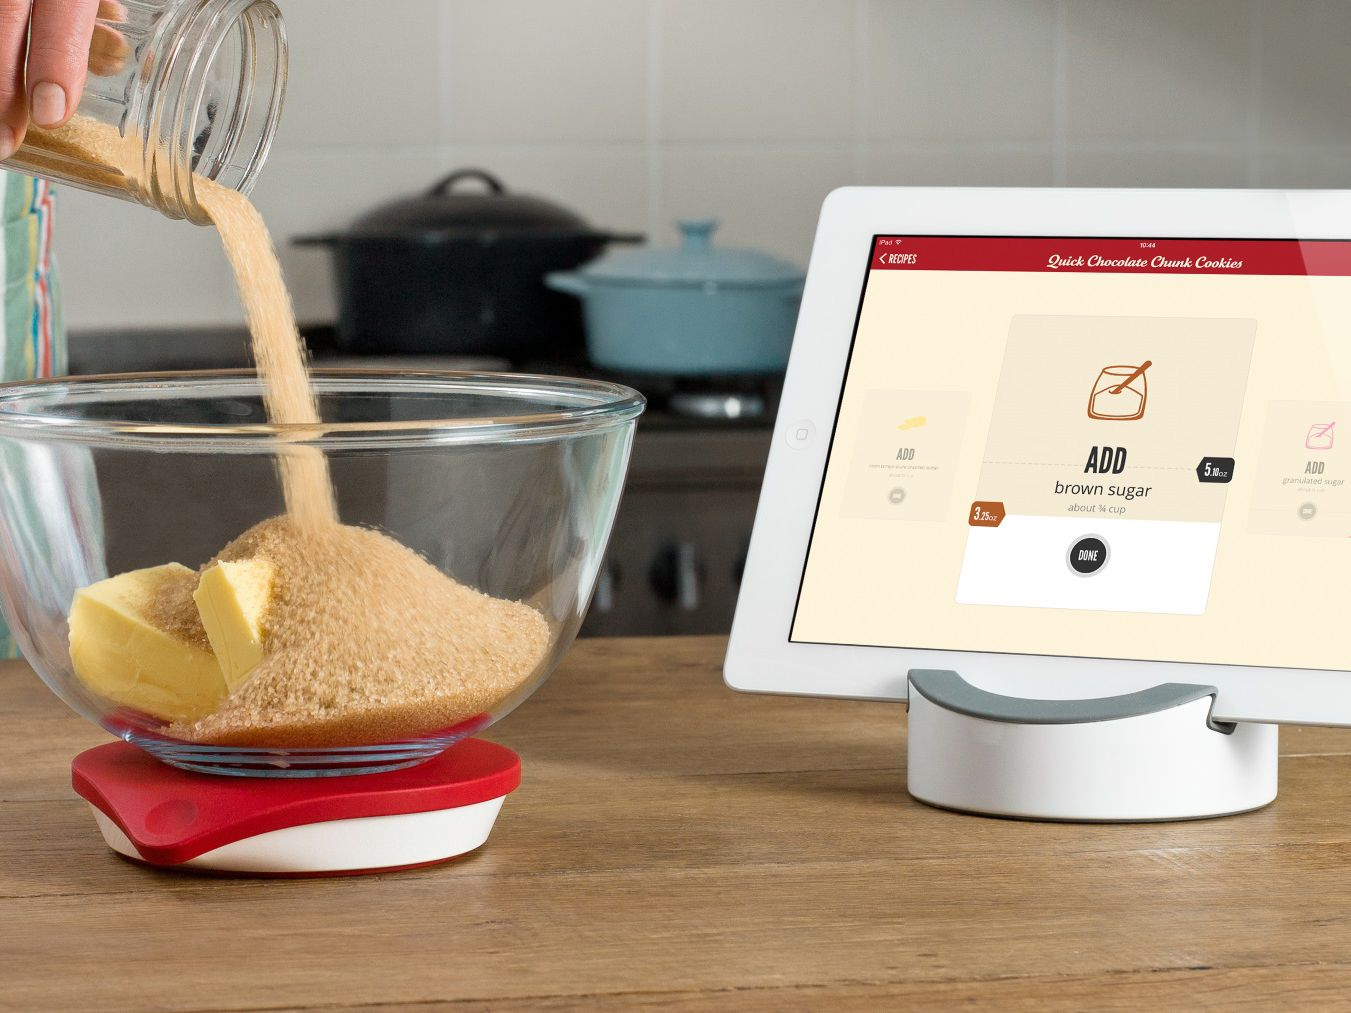 Best Ways to Use the iPad in the Kitchen